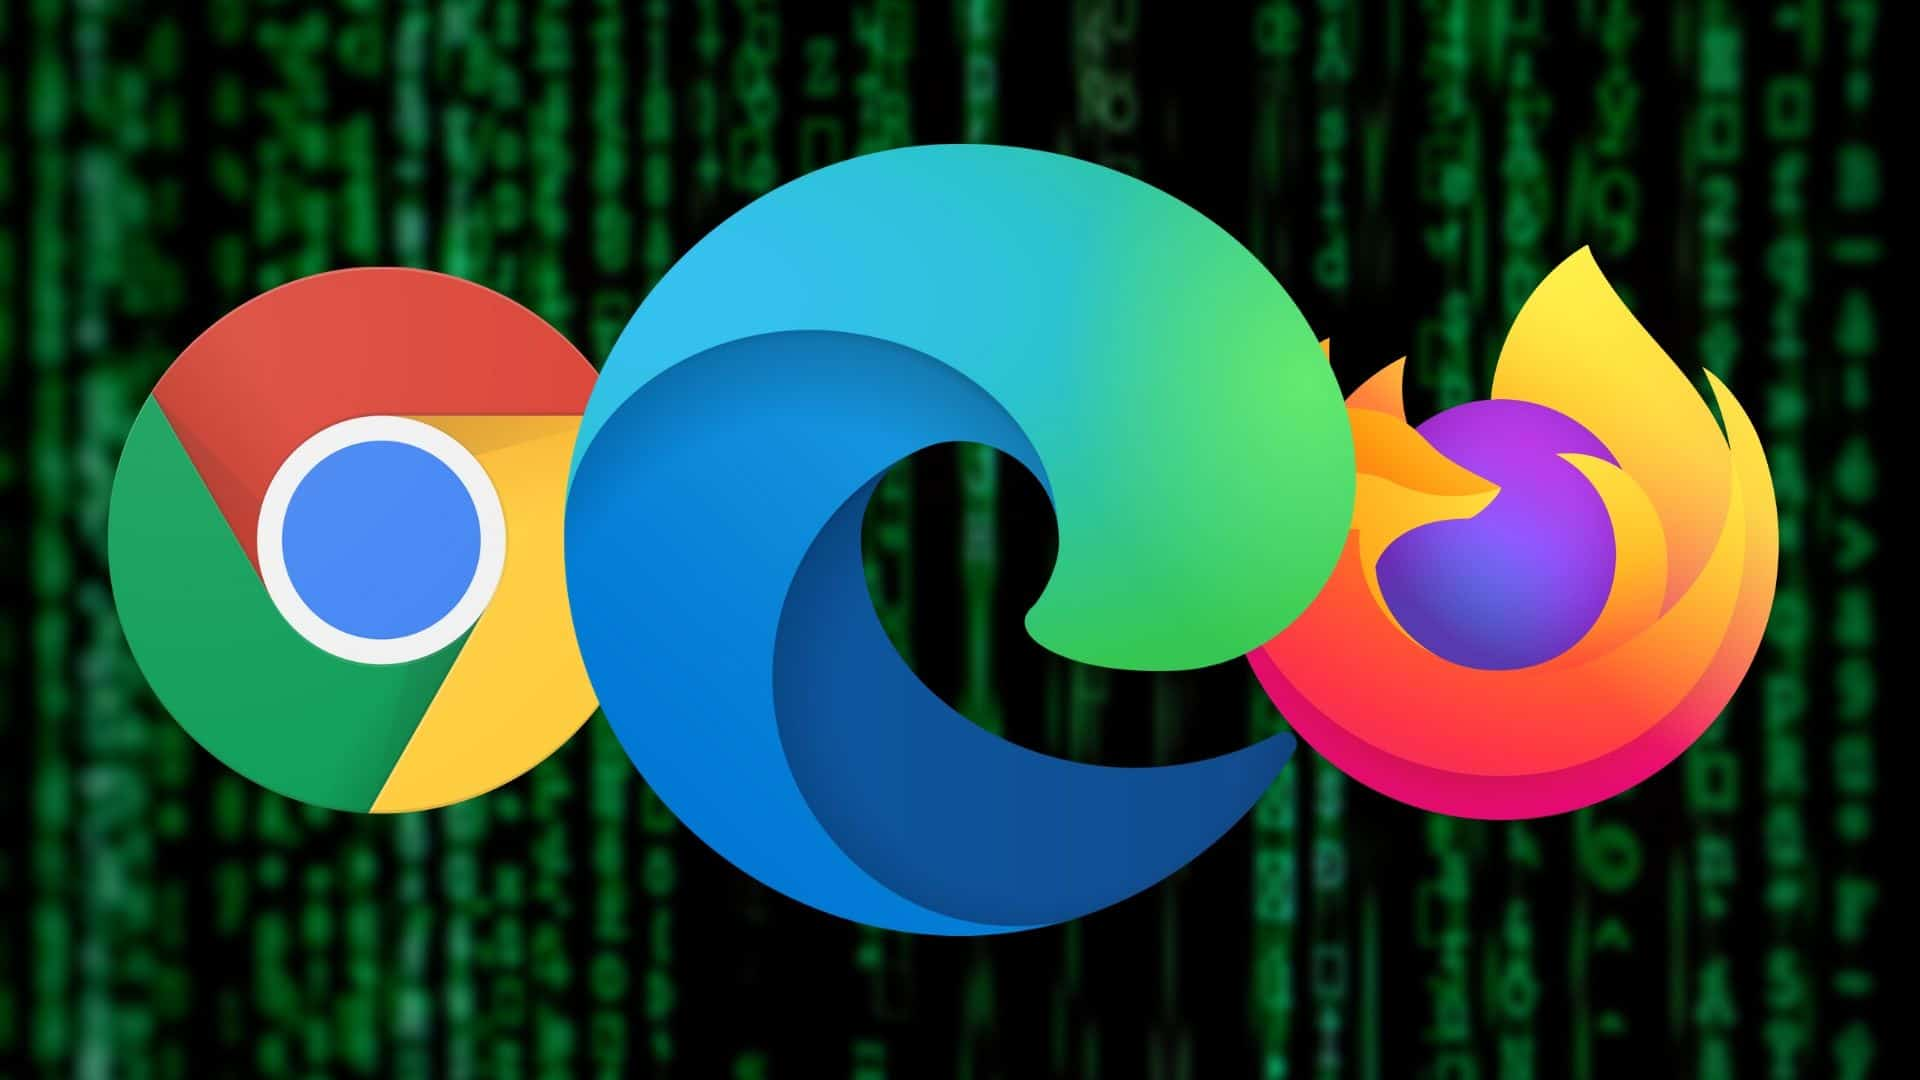 Firefox, Chrome, Edge Bugs Allows Remote System Hijacking